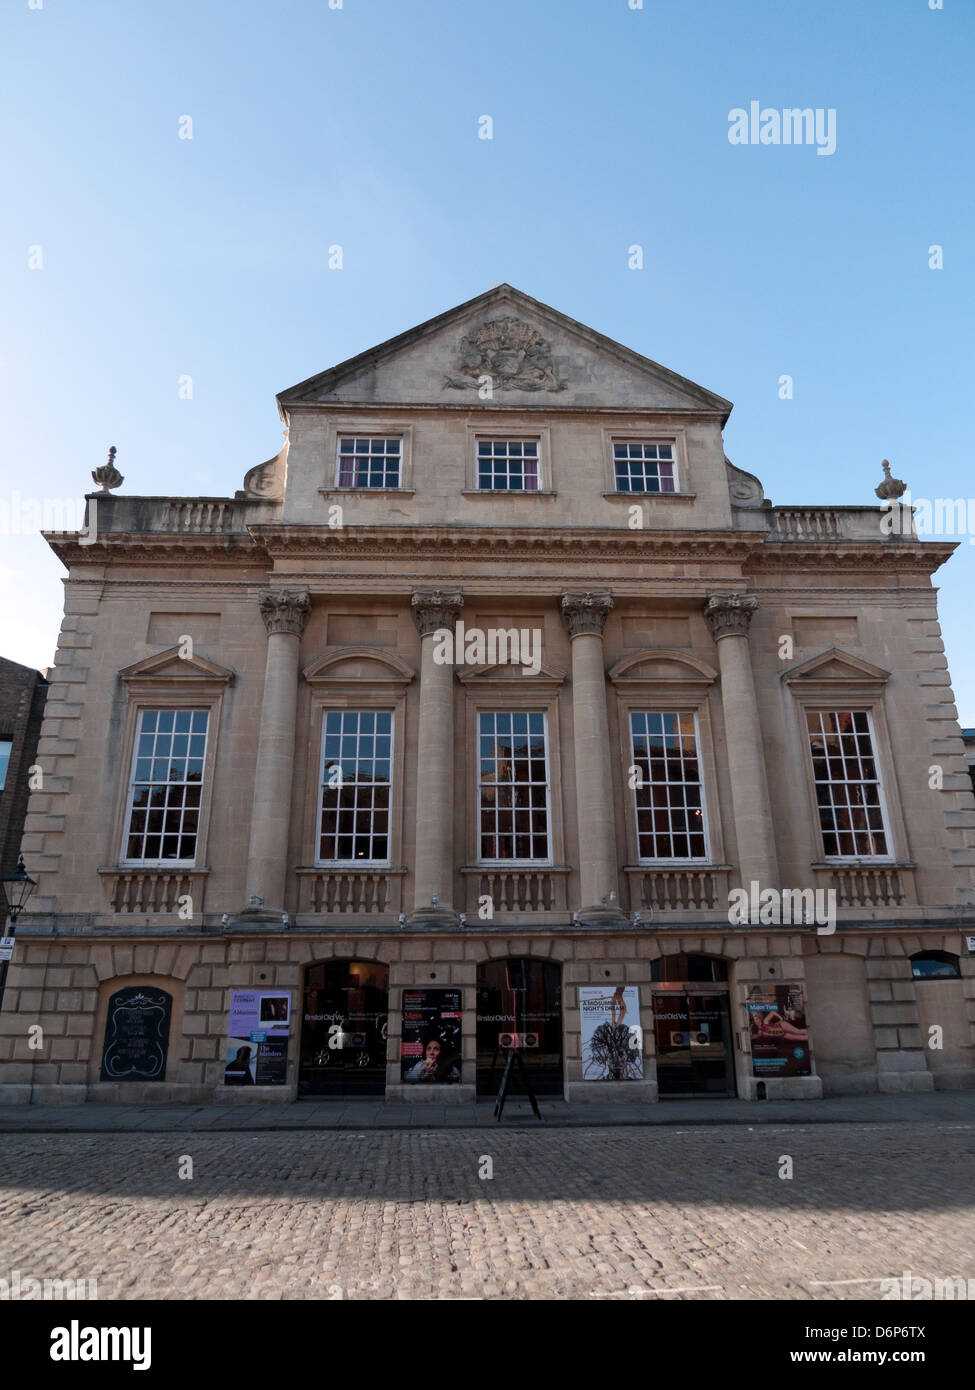 Exterior view of the Theatre Royal Bristol Old Vic facade King Street front of building Bristol England UK  KATHY - Stock Image